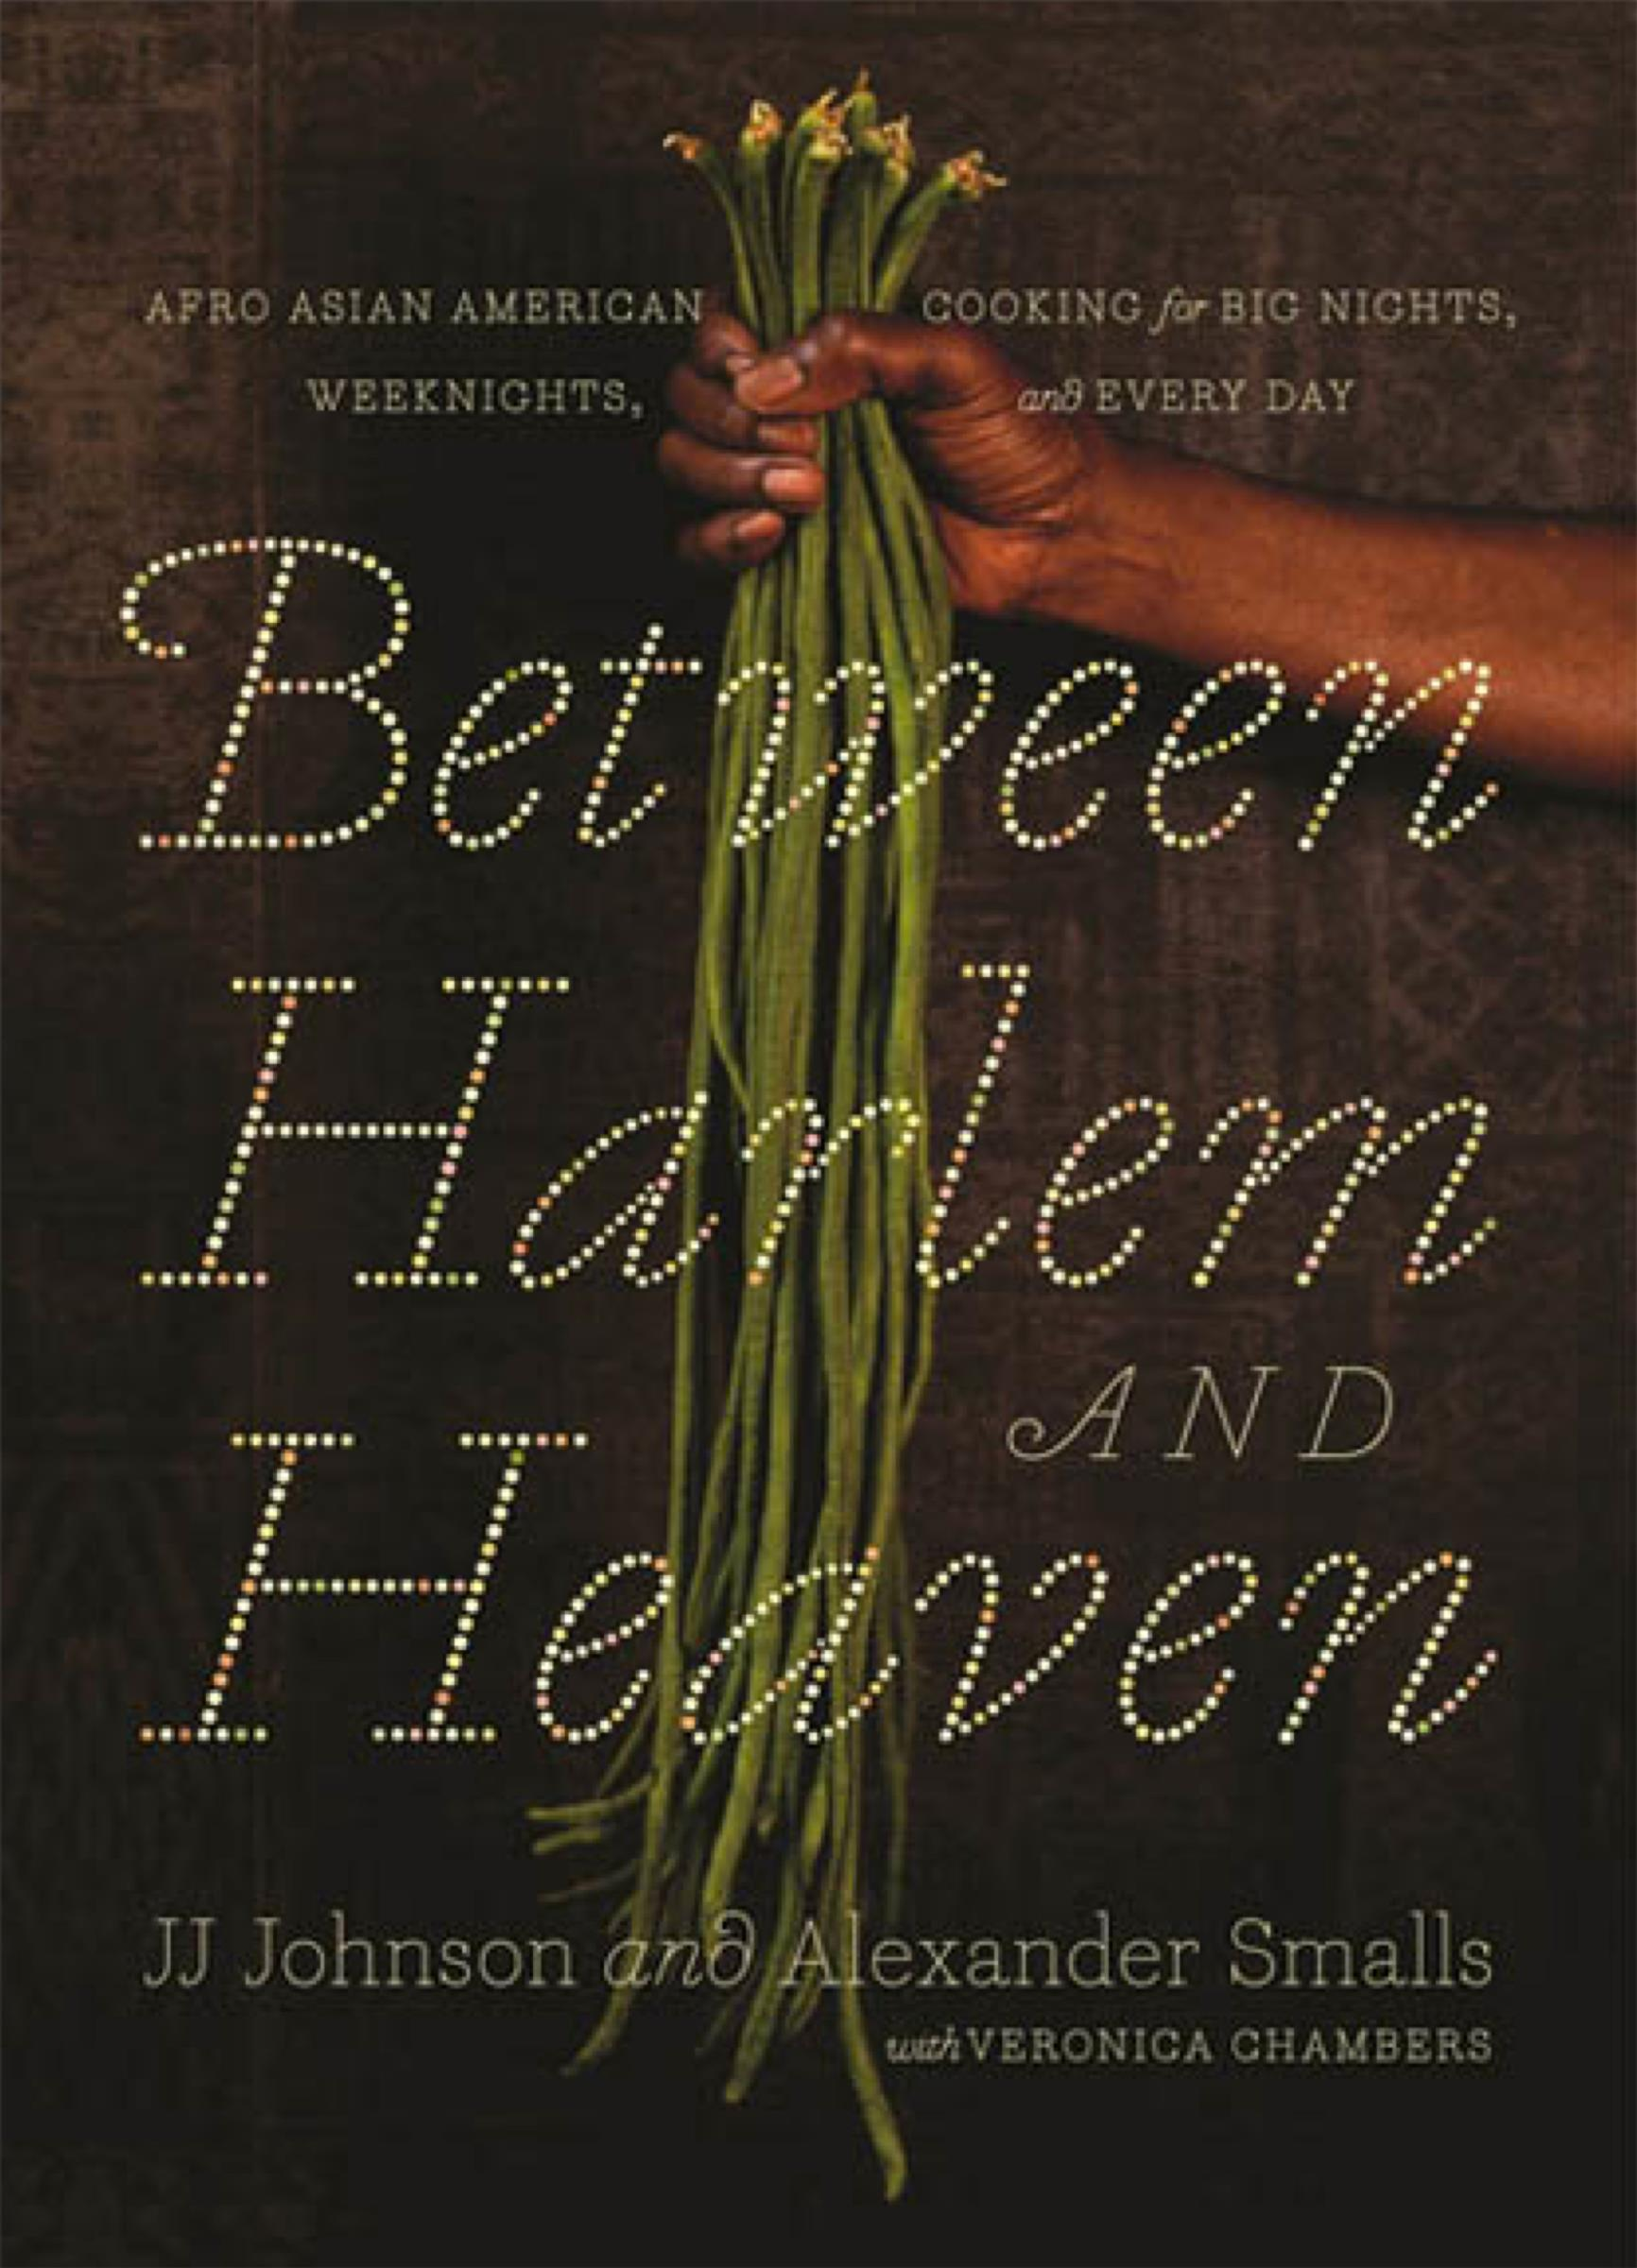 Between Harlem and Heaven. Afro Asian American cooking for big nights, weeknights, and everyday. JJ Johnson and Alexander Smalls with Veronica Chambers.